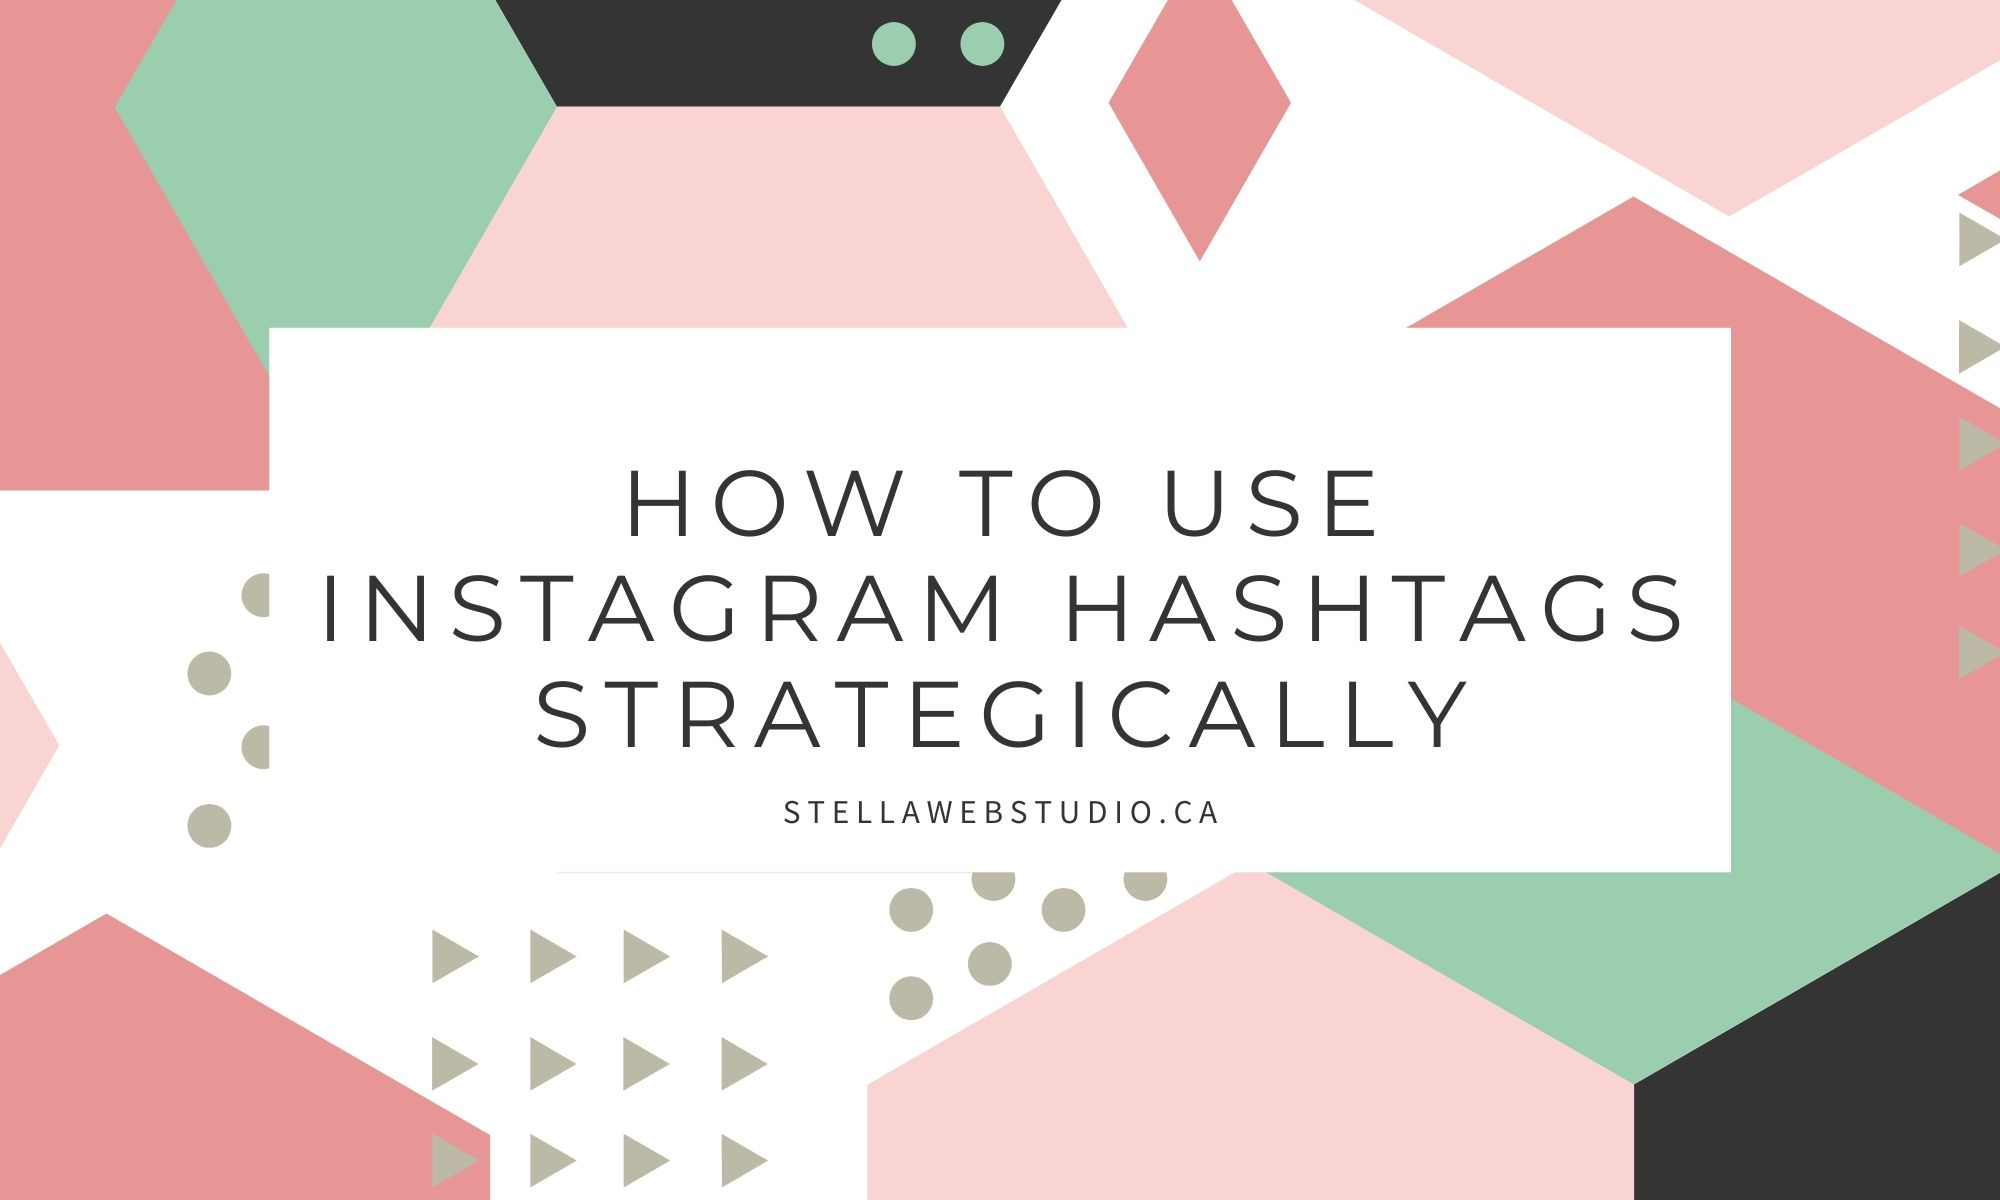 How to use Instagram hashtags strategically for maximum impact